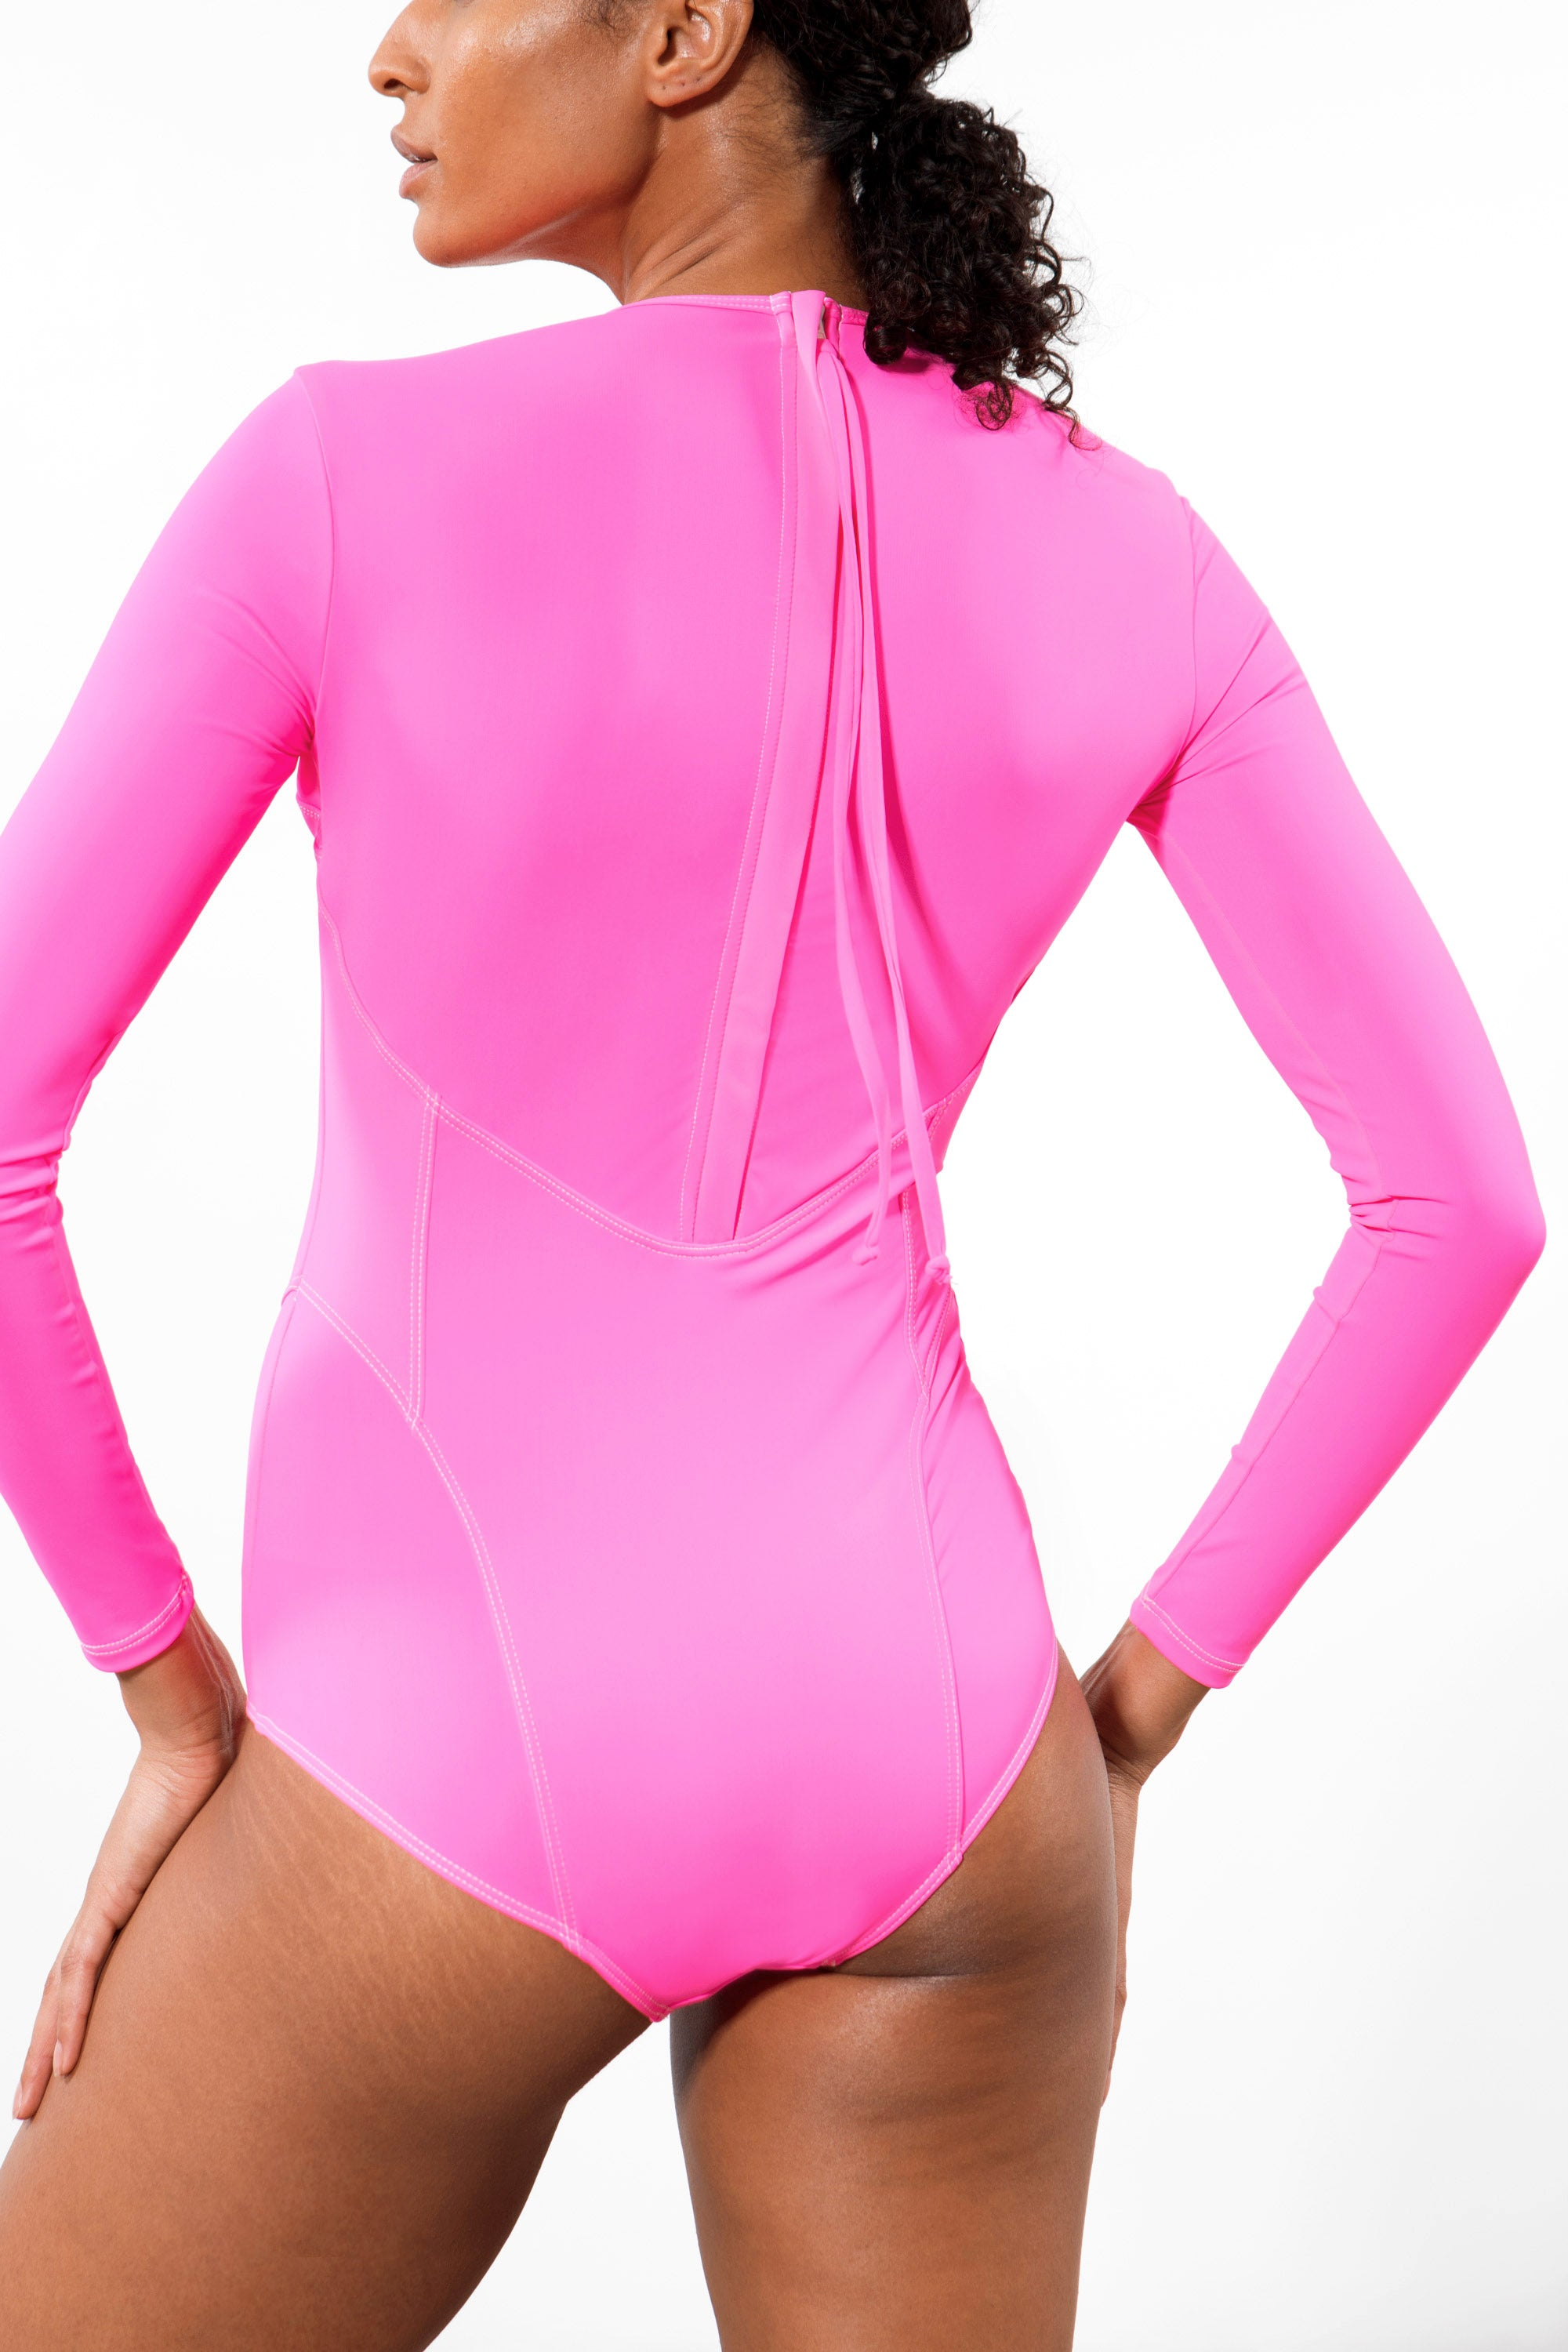 Mara Hoffman Rosa Shocking Lido One Piece in ECONYL (back detail)